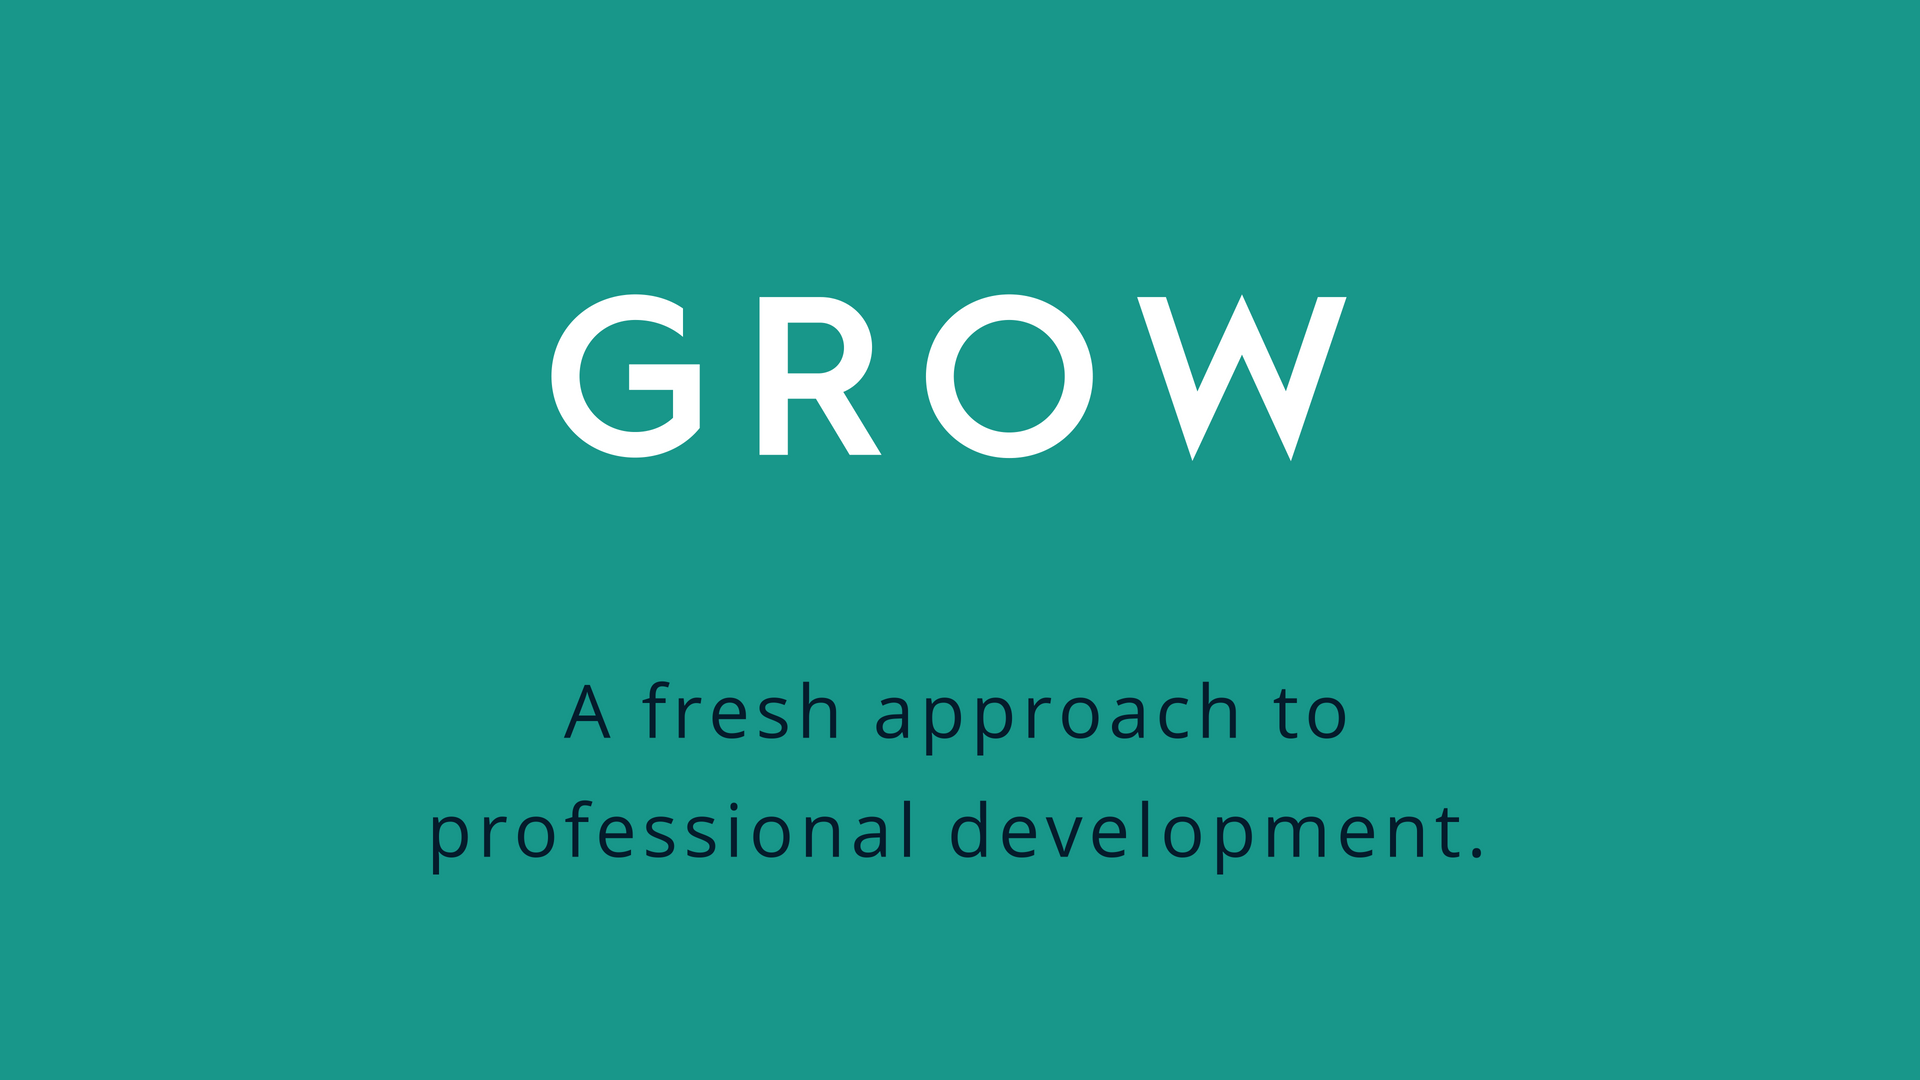 GROW: Professional Development